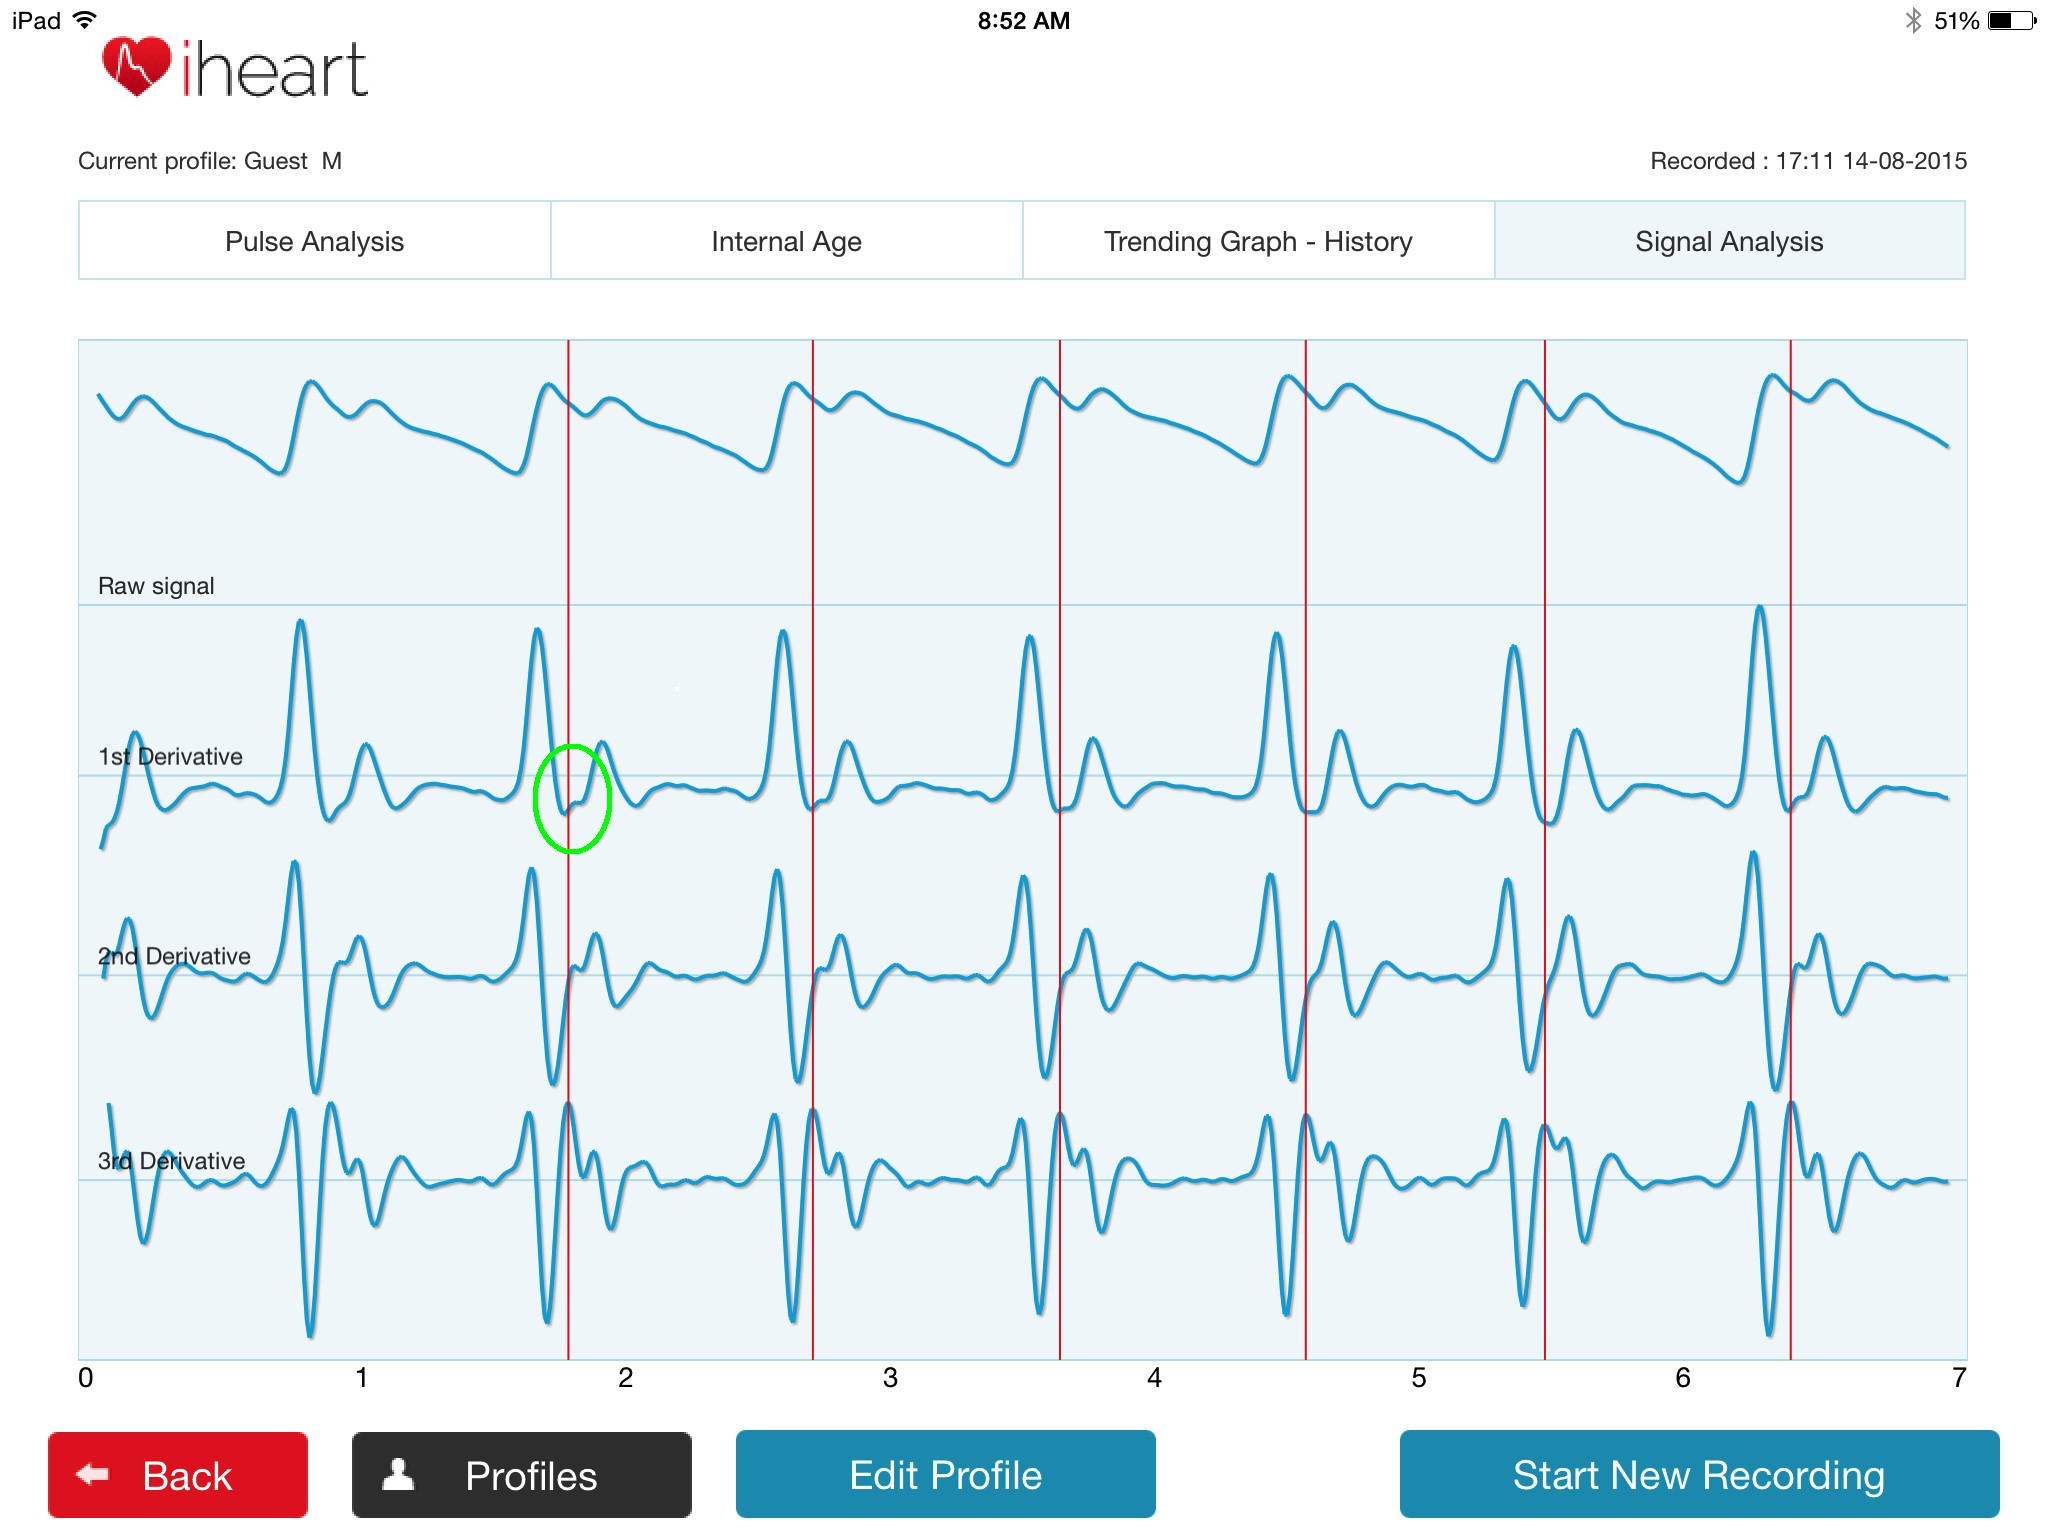 iheart internal age pulse tracker